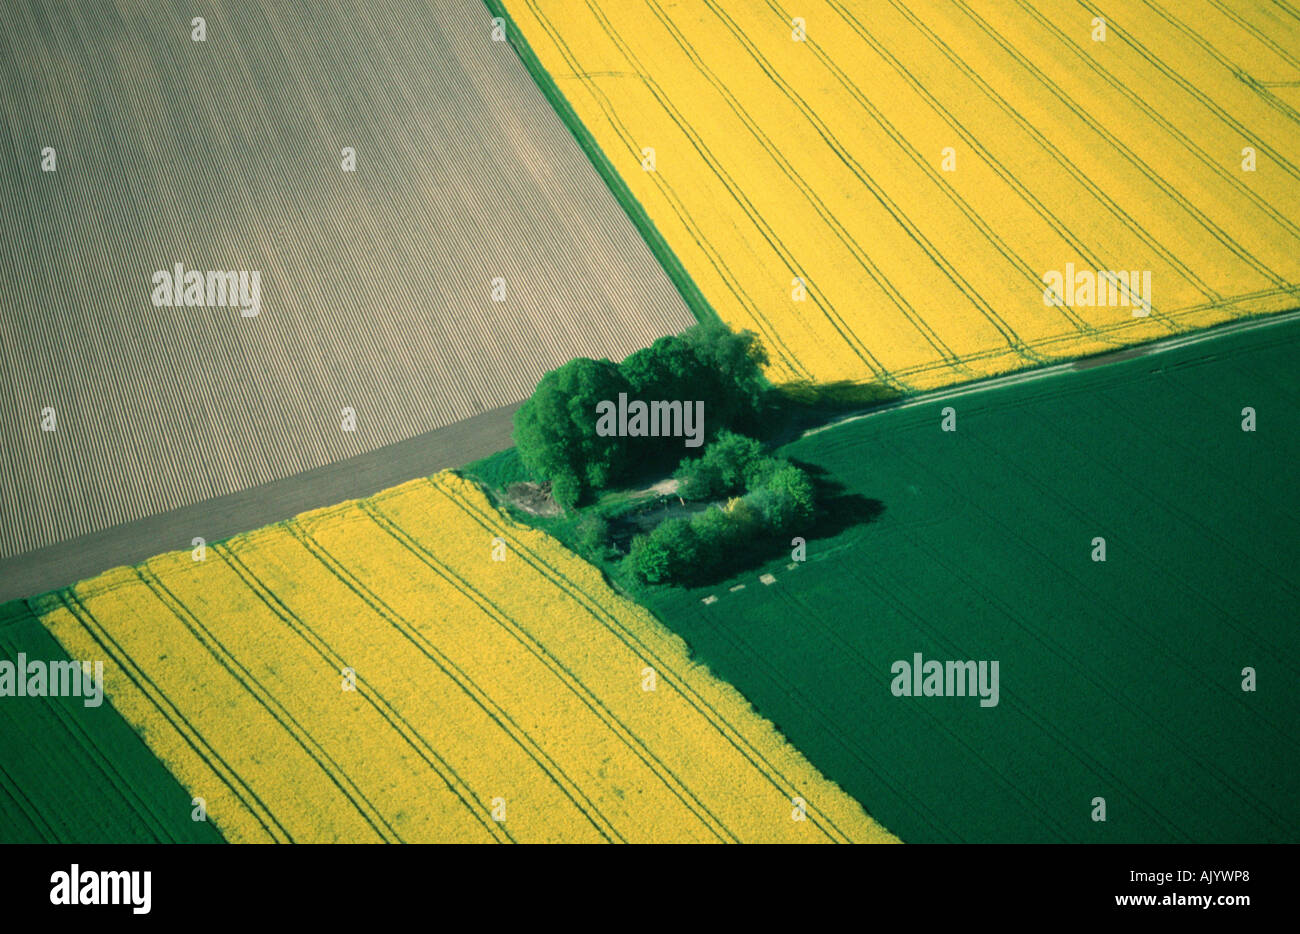 Pays agricole / Agrarland Banque D'Images